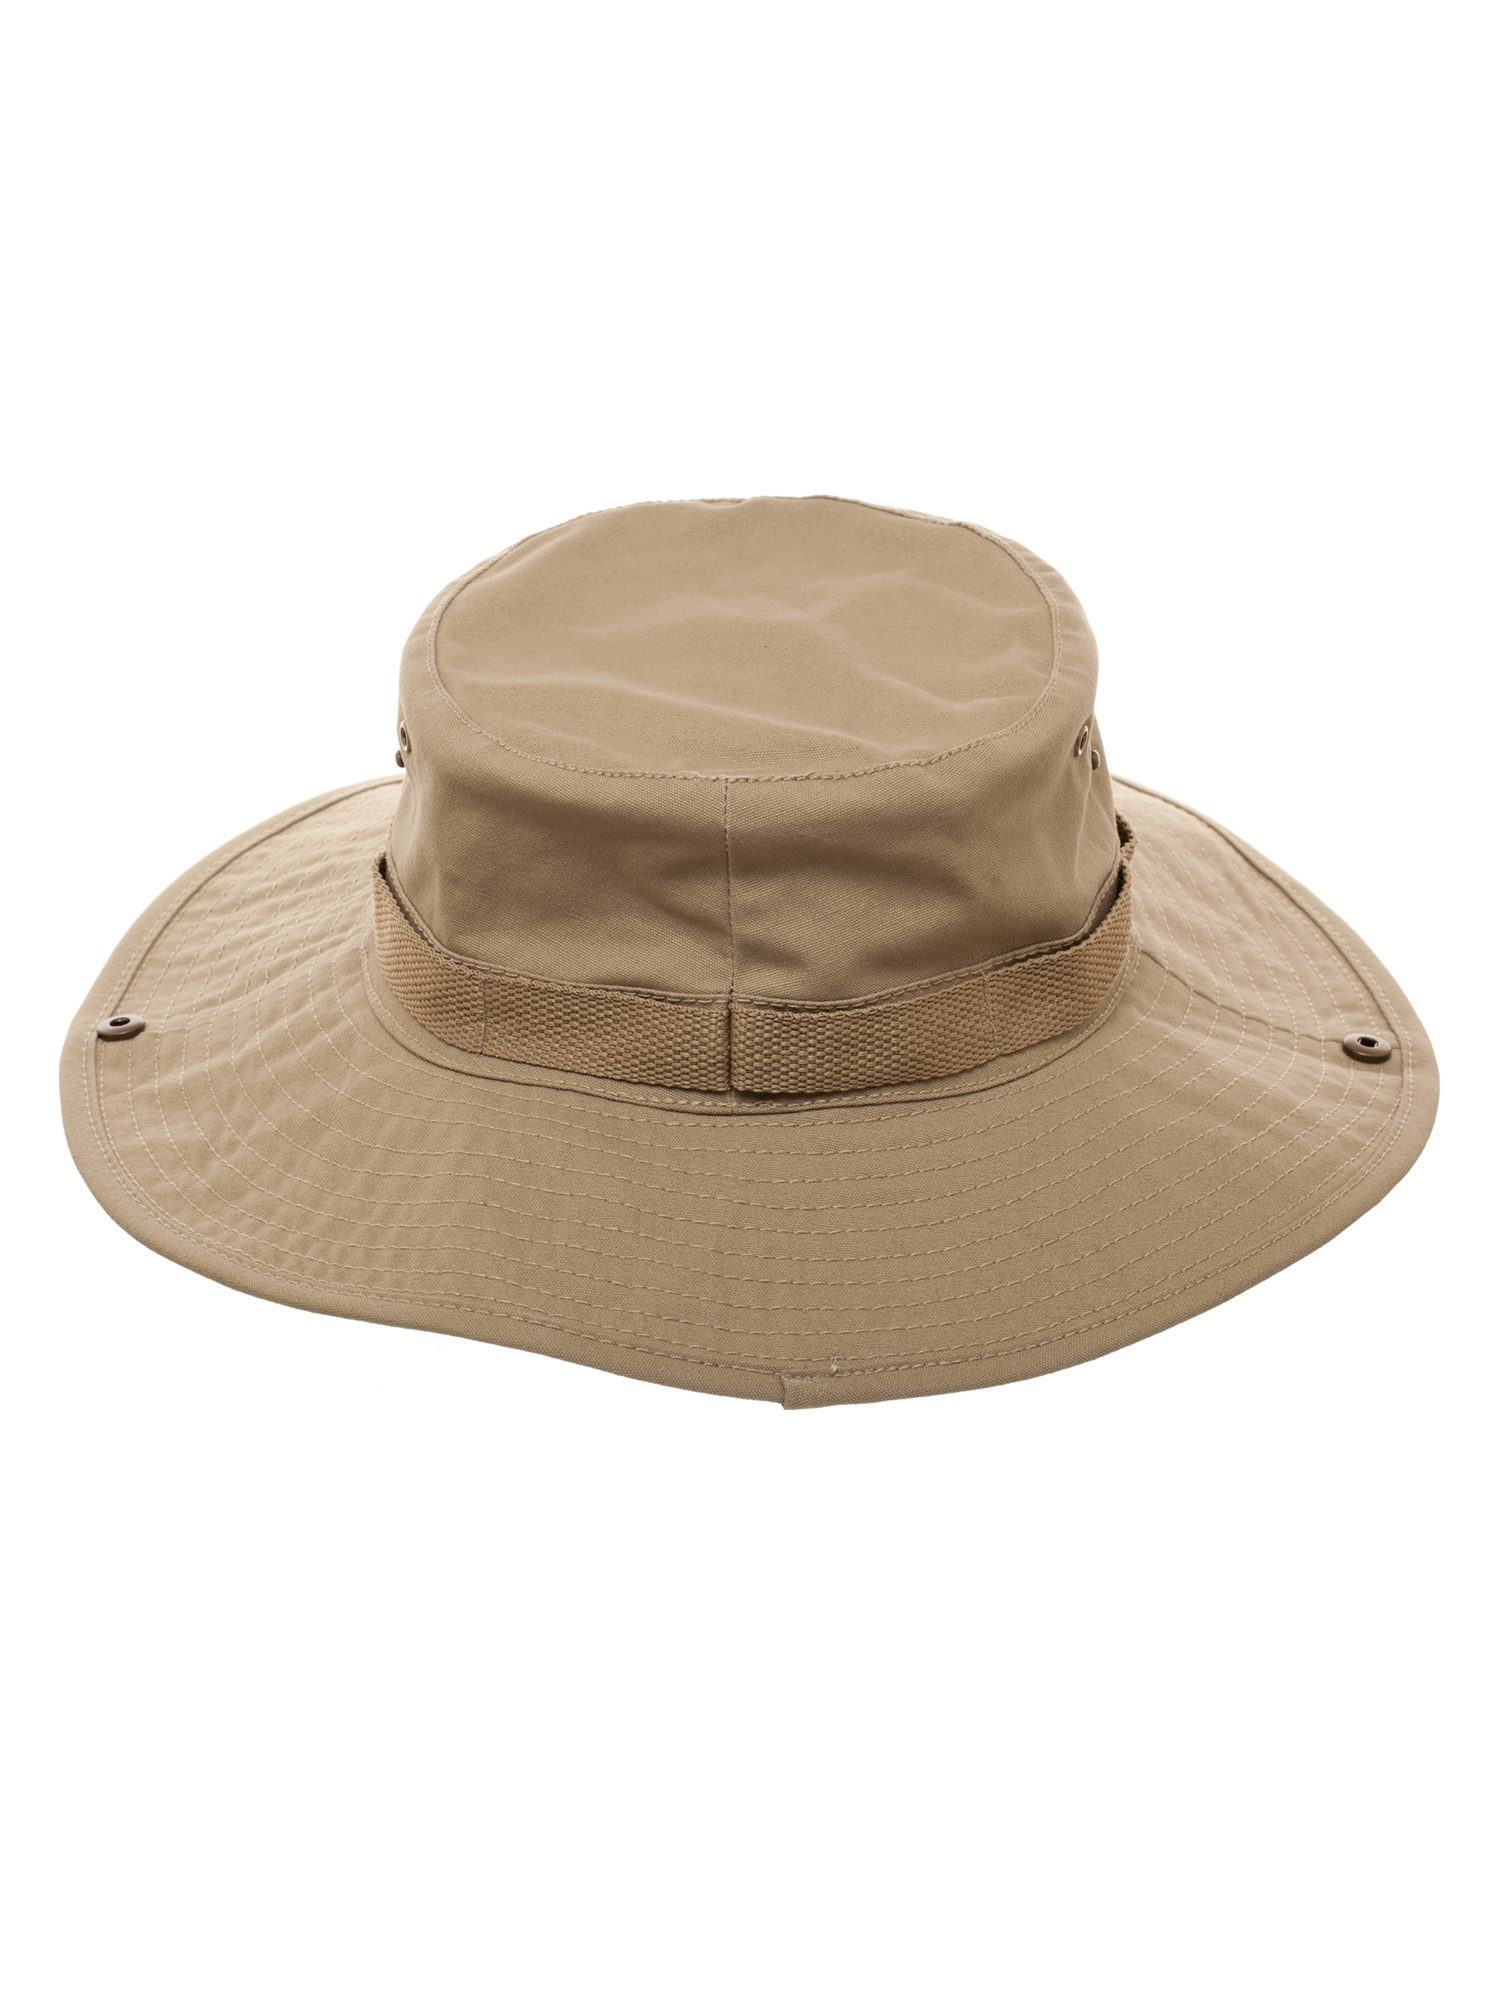 601c14de2e3 Swiss Tech - Swiss Tech Men s Khaki Canvas Outback Boonie Hat - Walmart.com